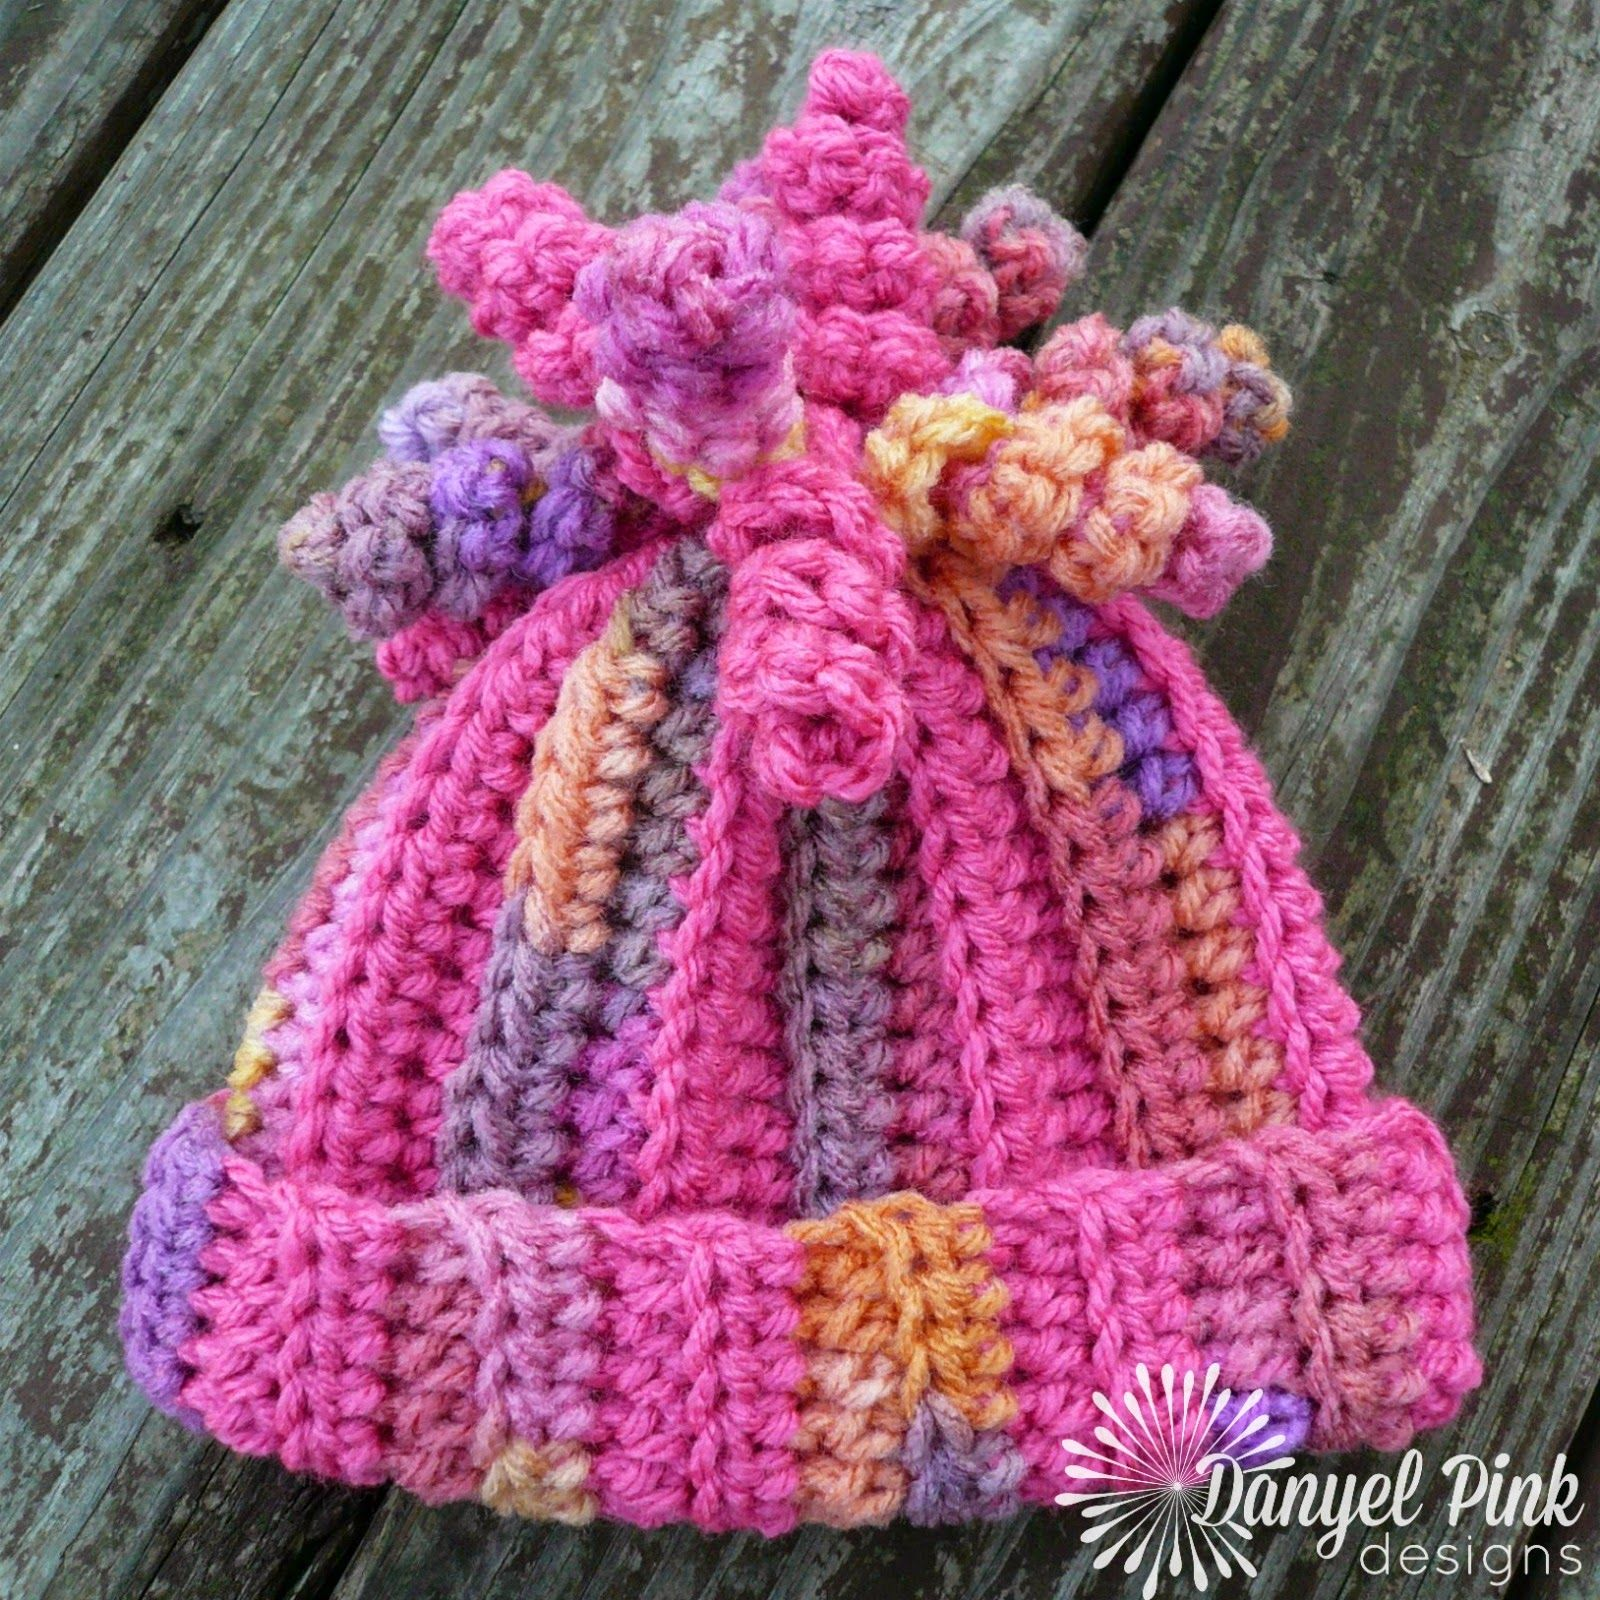 How cute is this??? Fall is in the air already here; so time to get ...